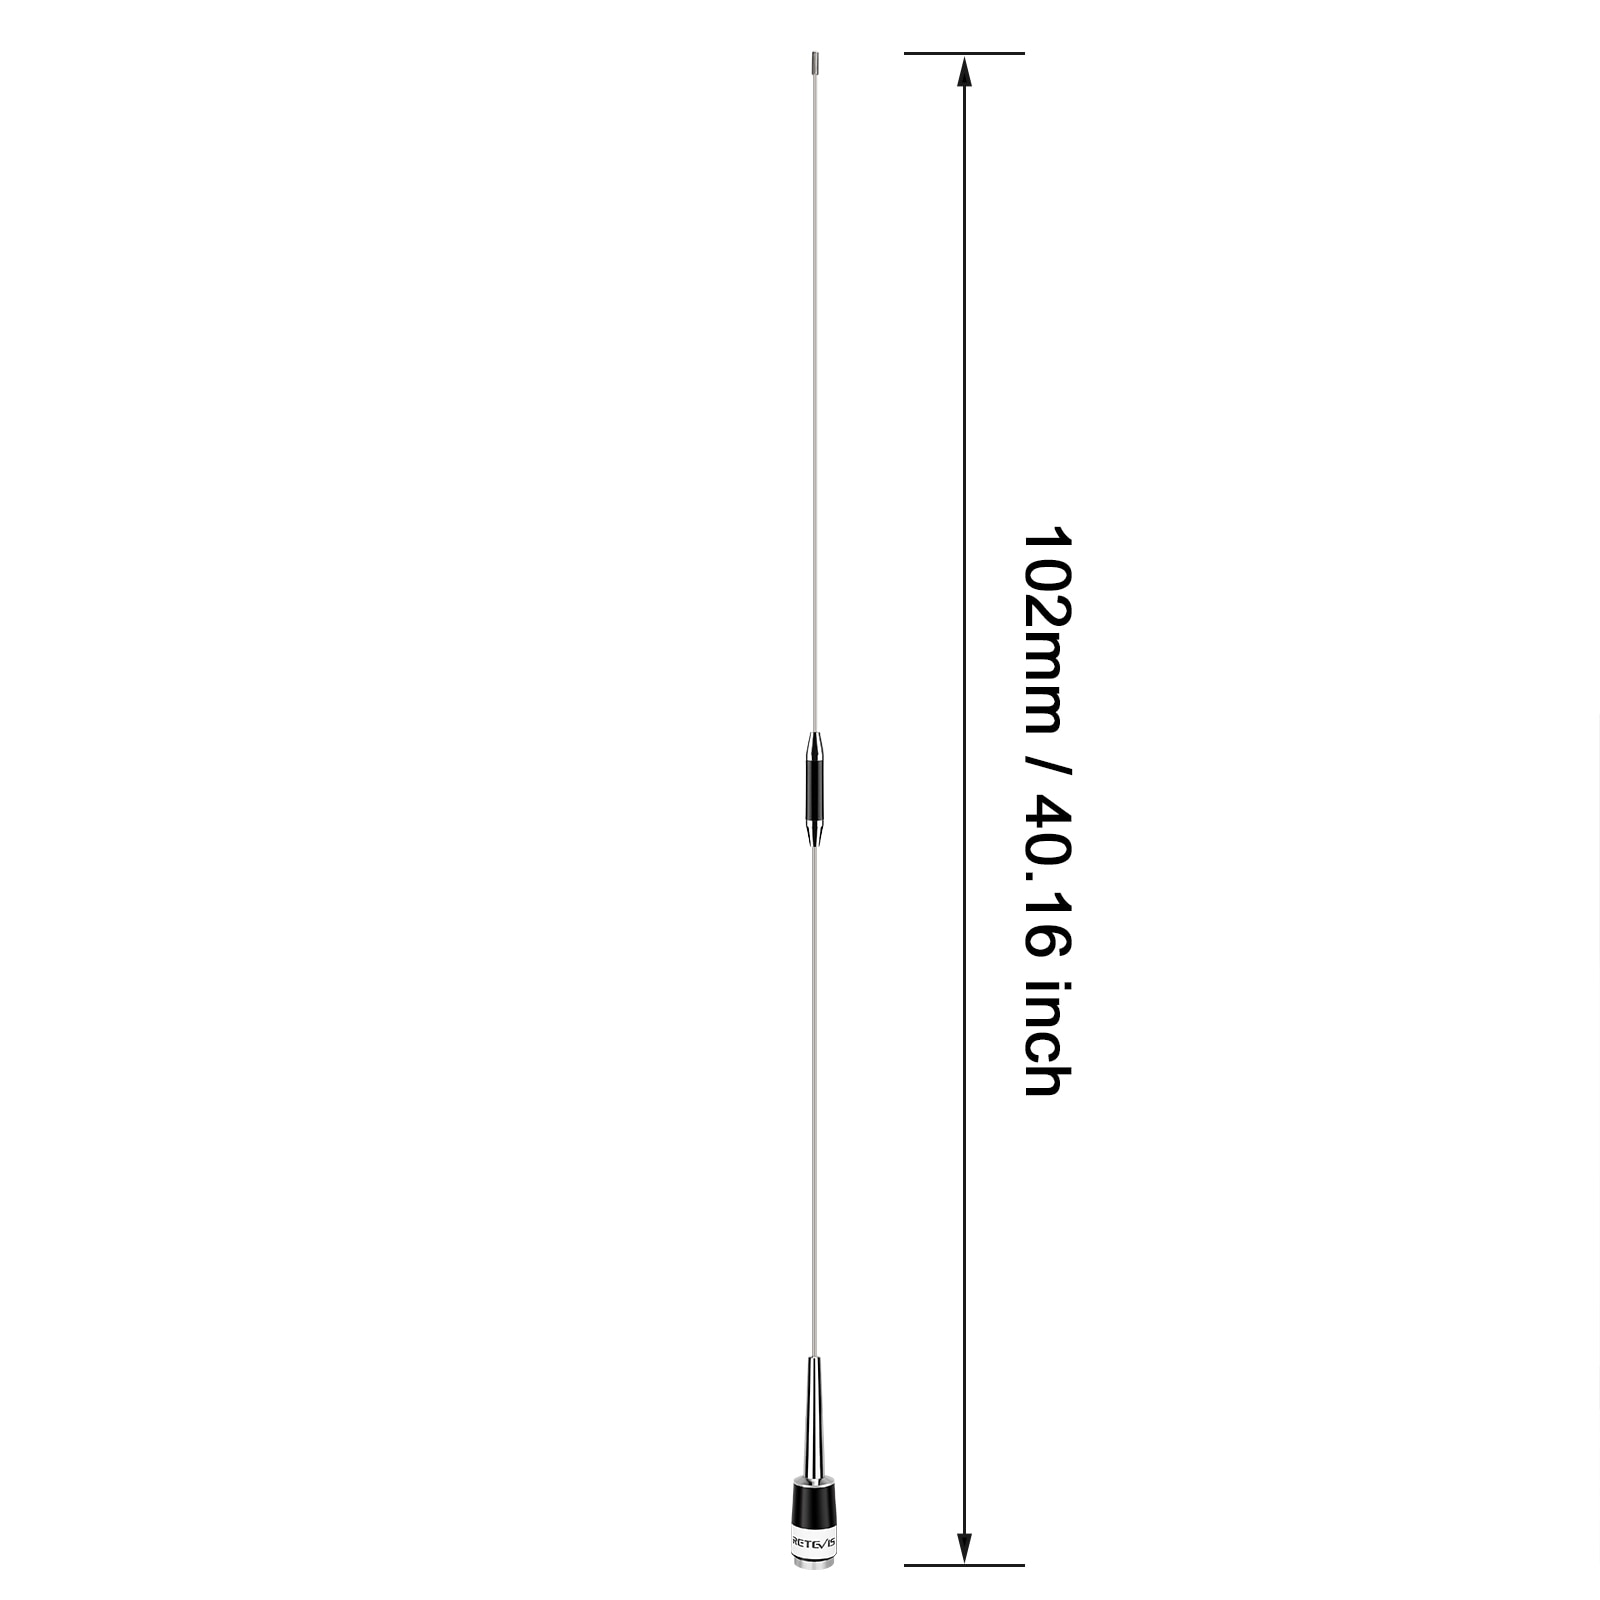 Retevis MA08 Omni-Directional Mobile Car Radio Antenna Walkie Talkie VHF 136-174MHz 200W 2.15dBi with PL259/SL16-J/M Connector enlarge